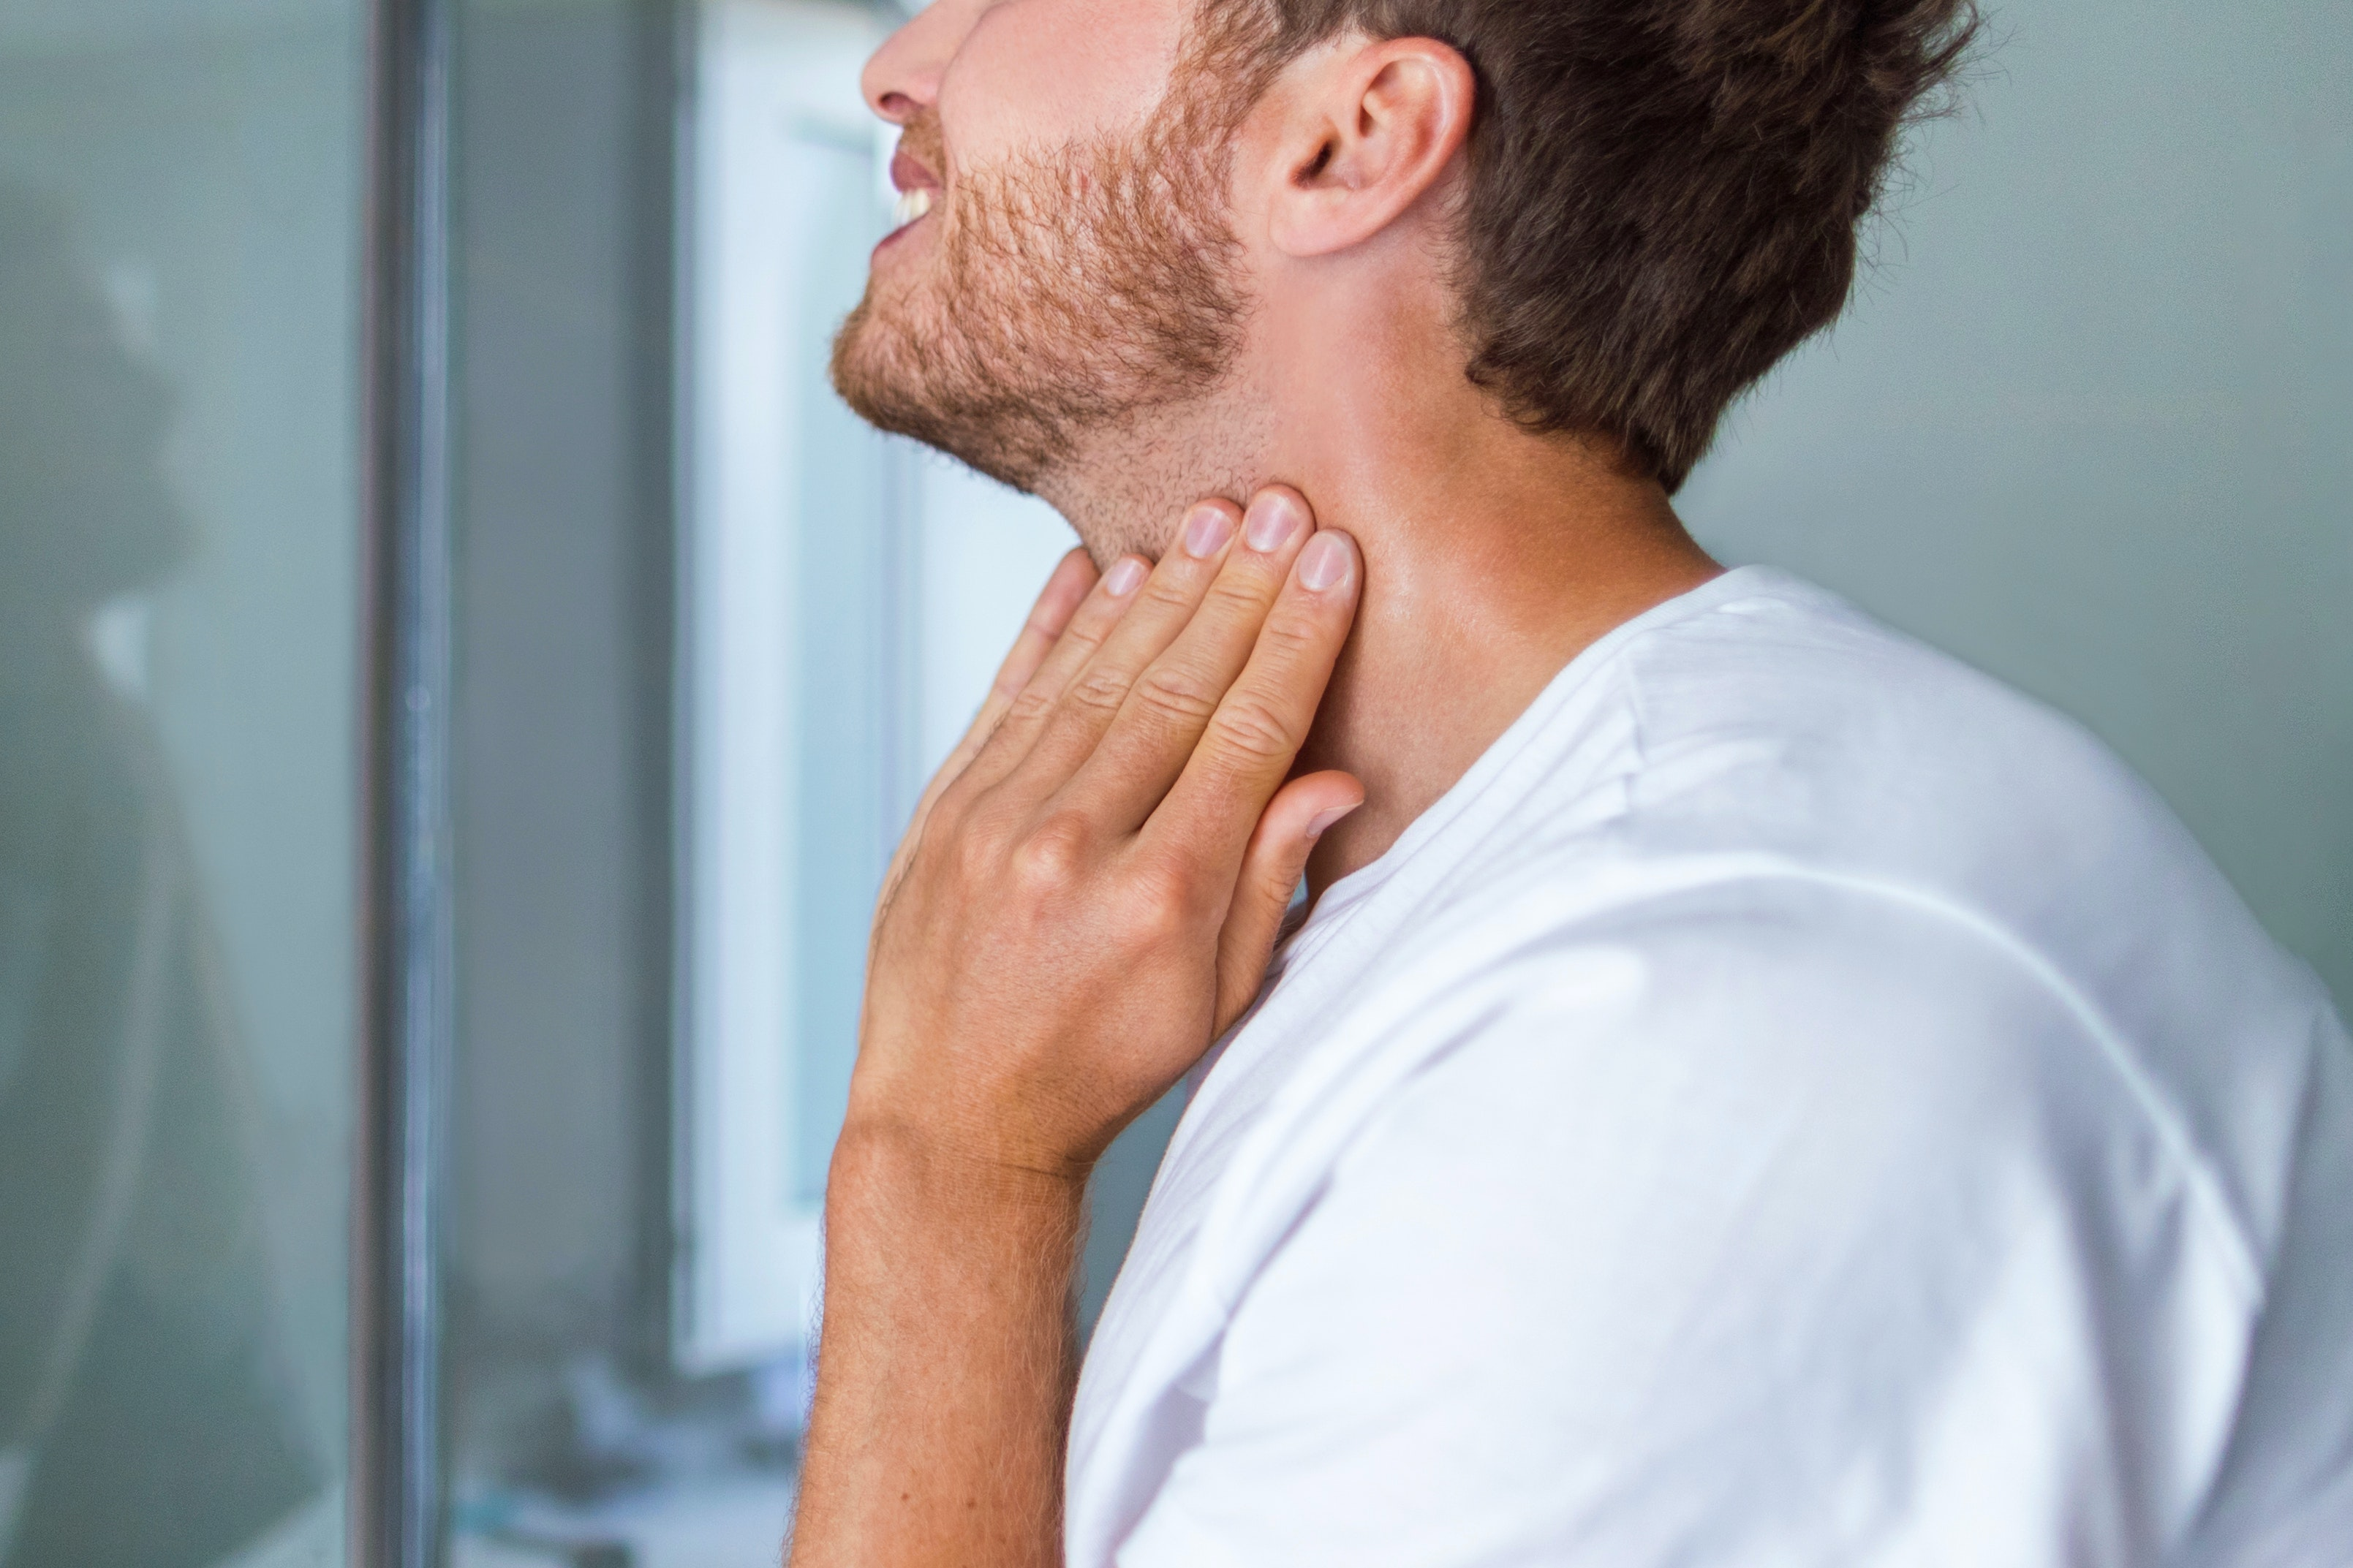 An image depicting a person suffering from mild neck swelling symptoms